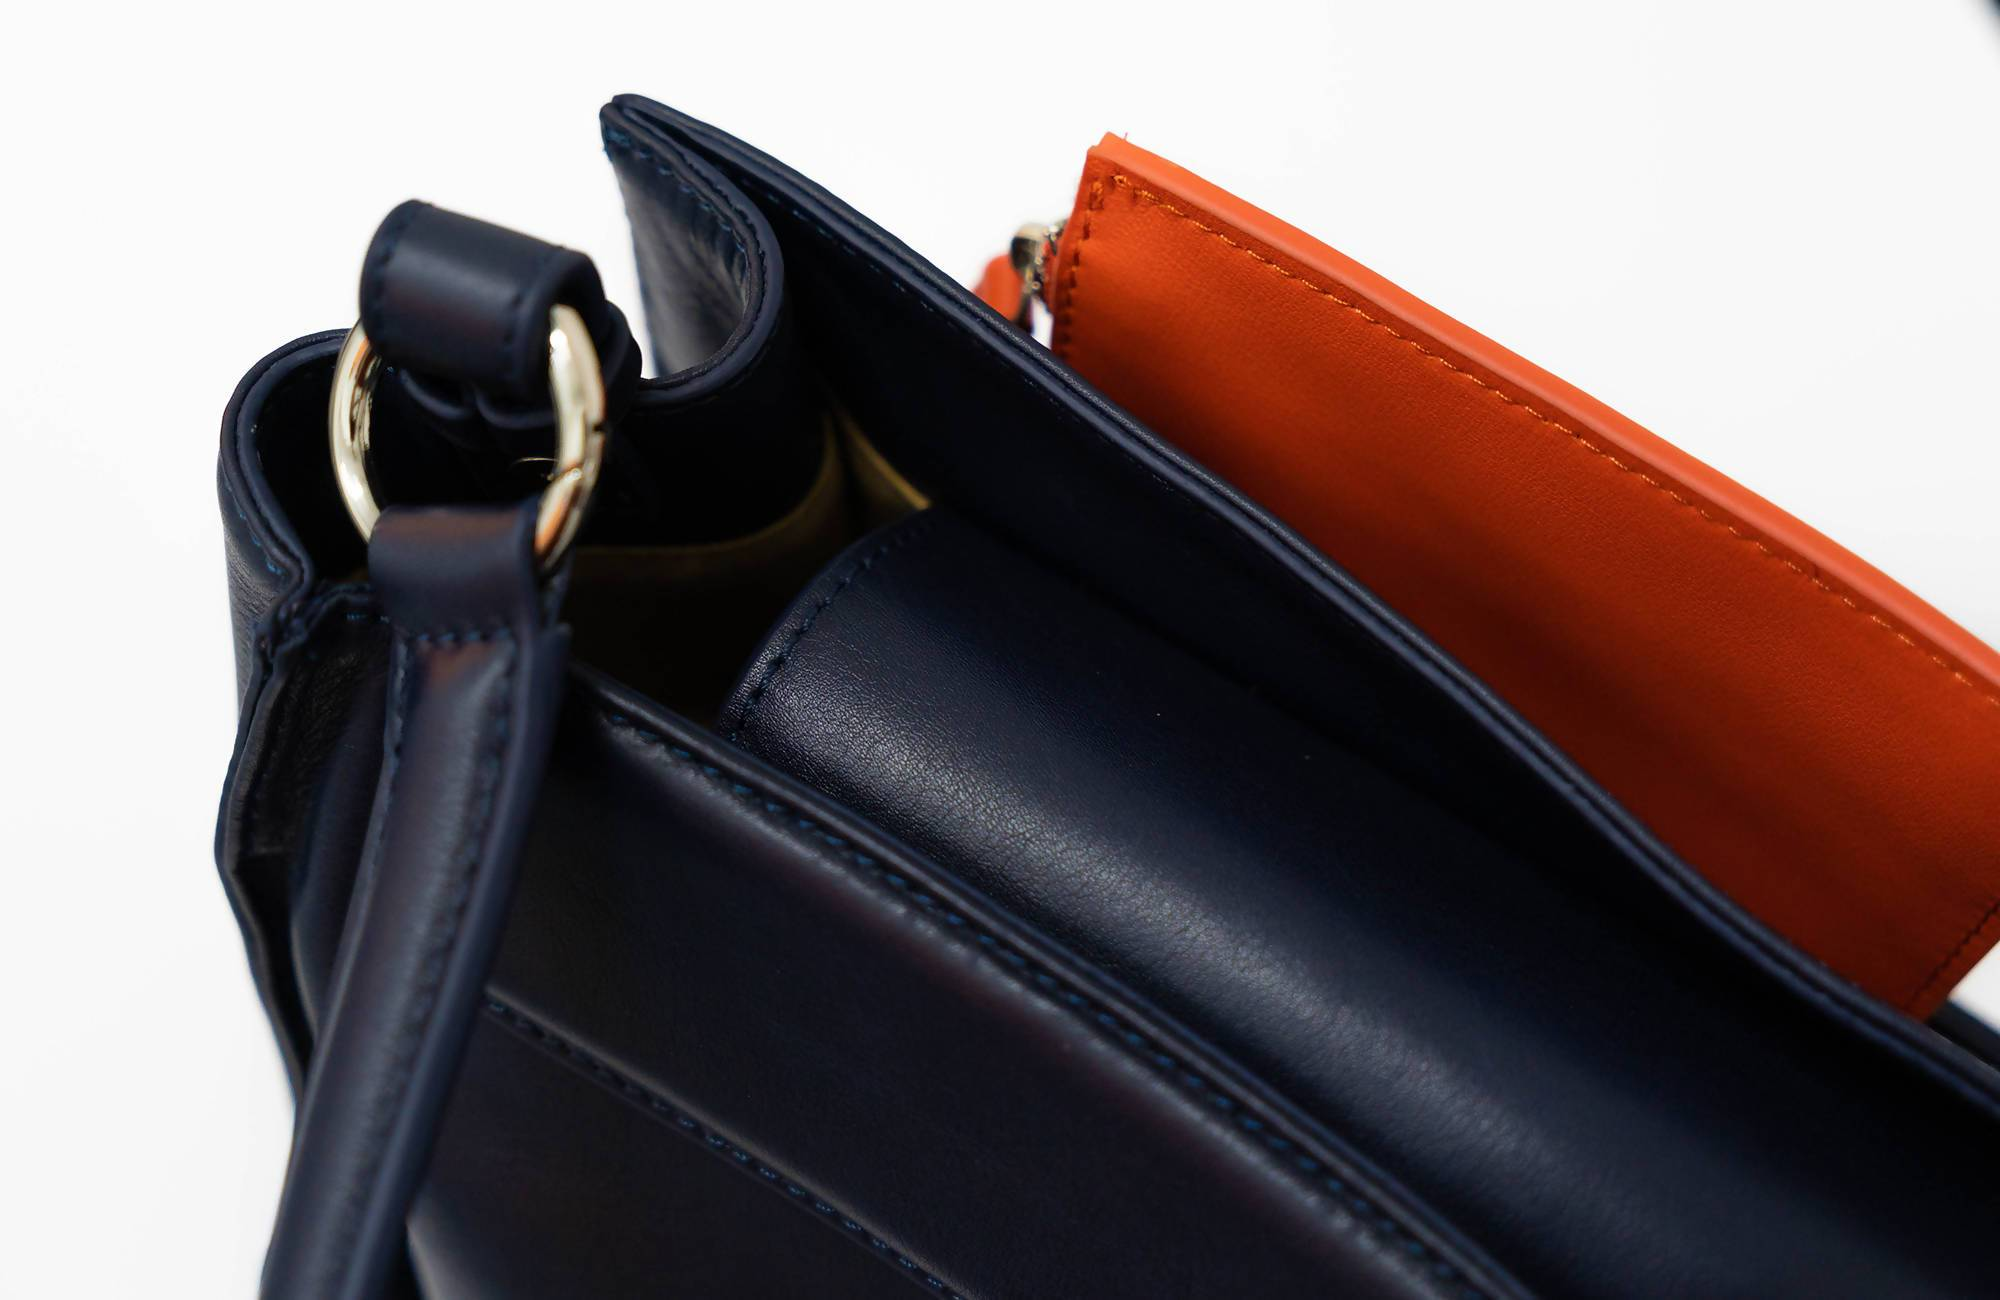 Celo Shoulder Bag (Midnight blue) - Women Bags - Reole Leather Bags & Wallets - Naiise